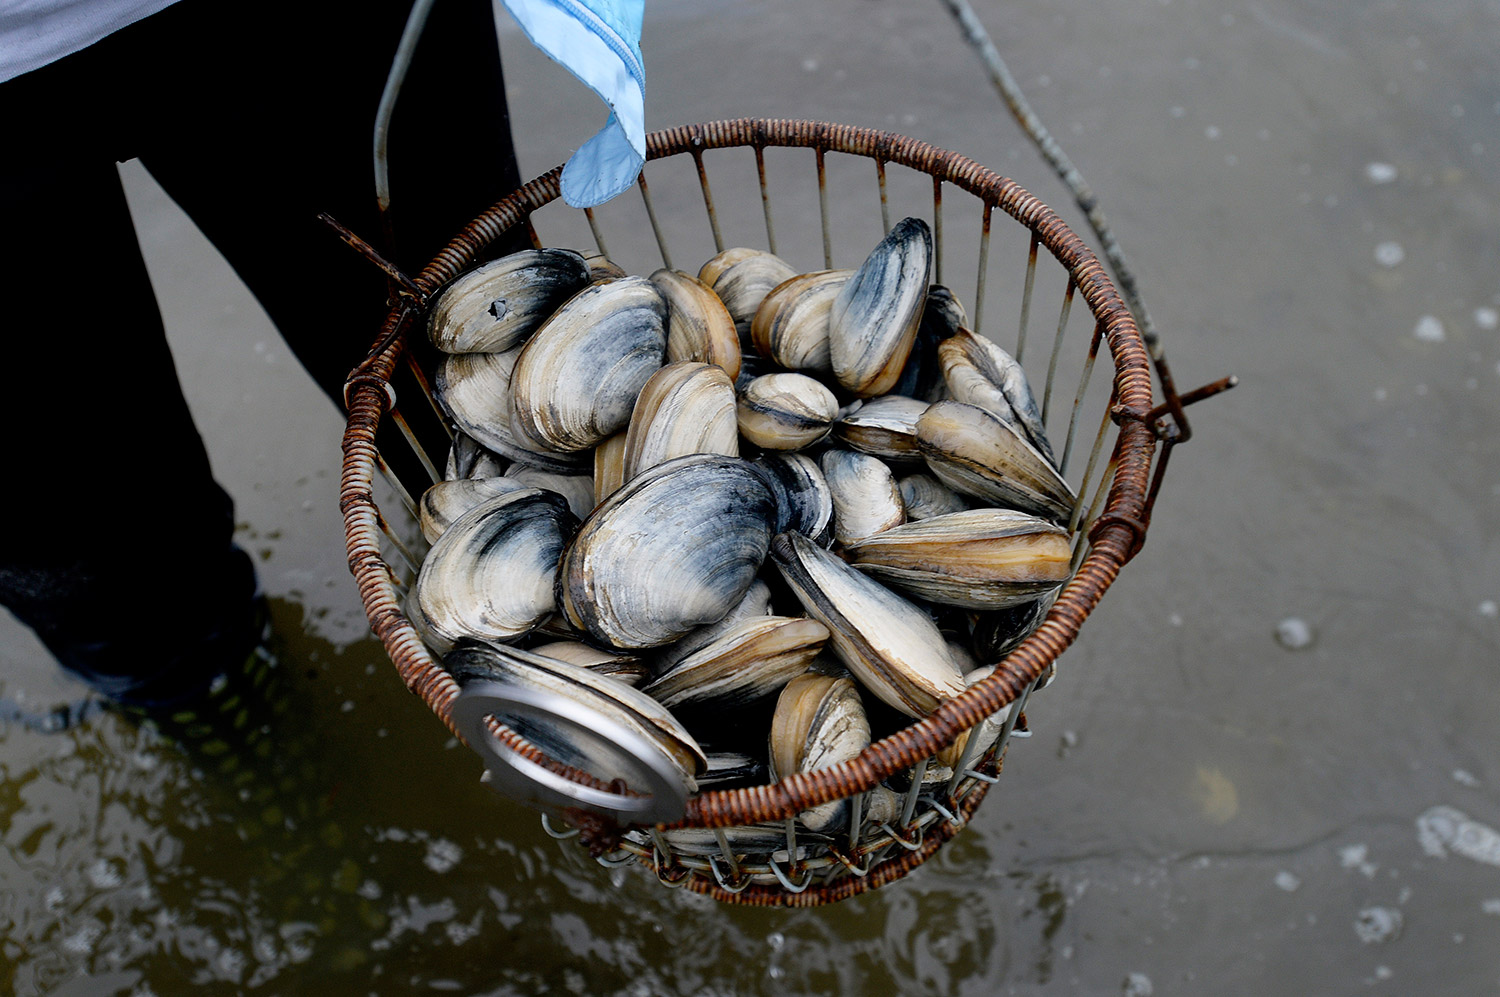 How to Tell if Clams Are Bad to Eat